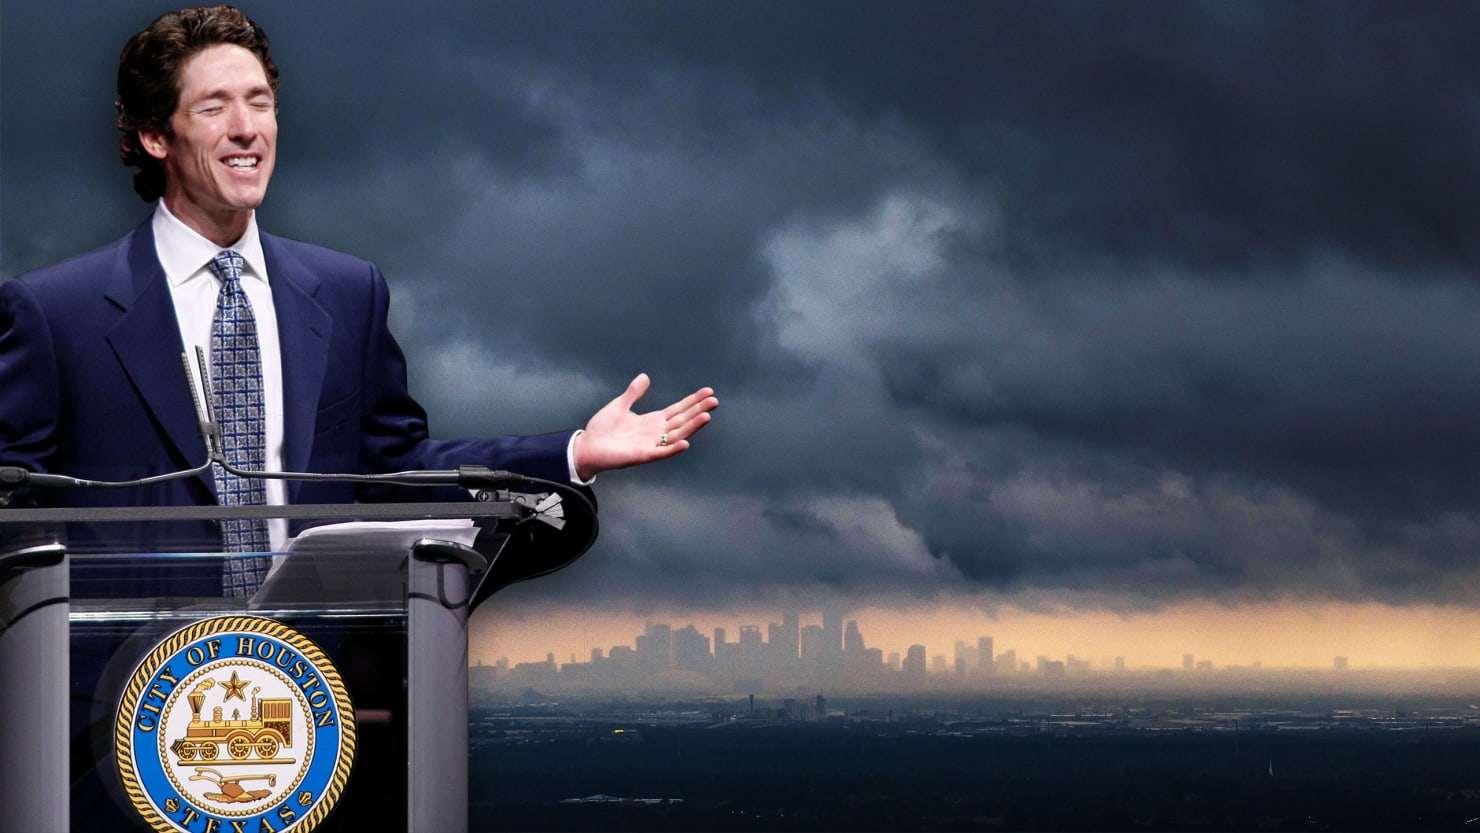 Joel Osteen's 'Prosperity Gospel' Made Him Houston's Hurricane Pariah